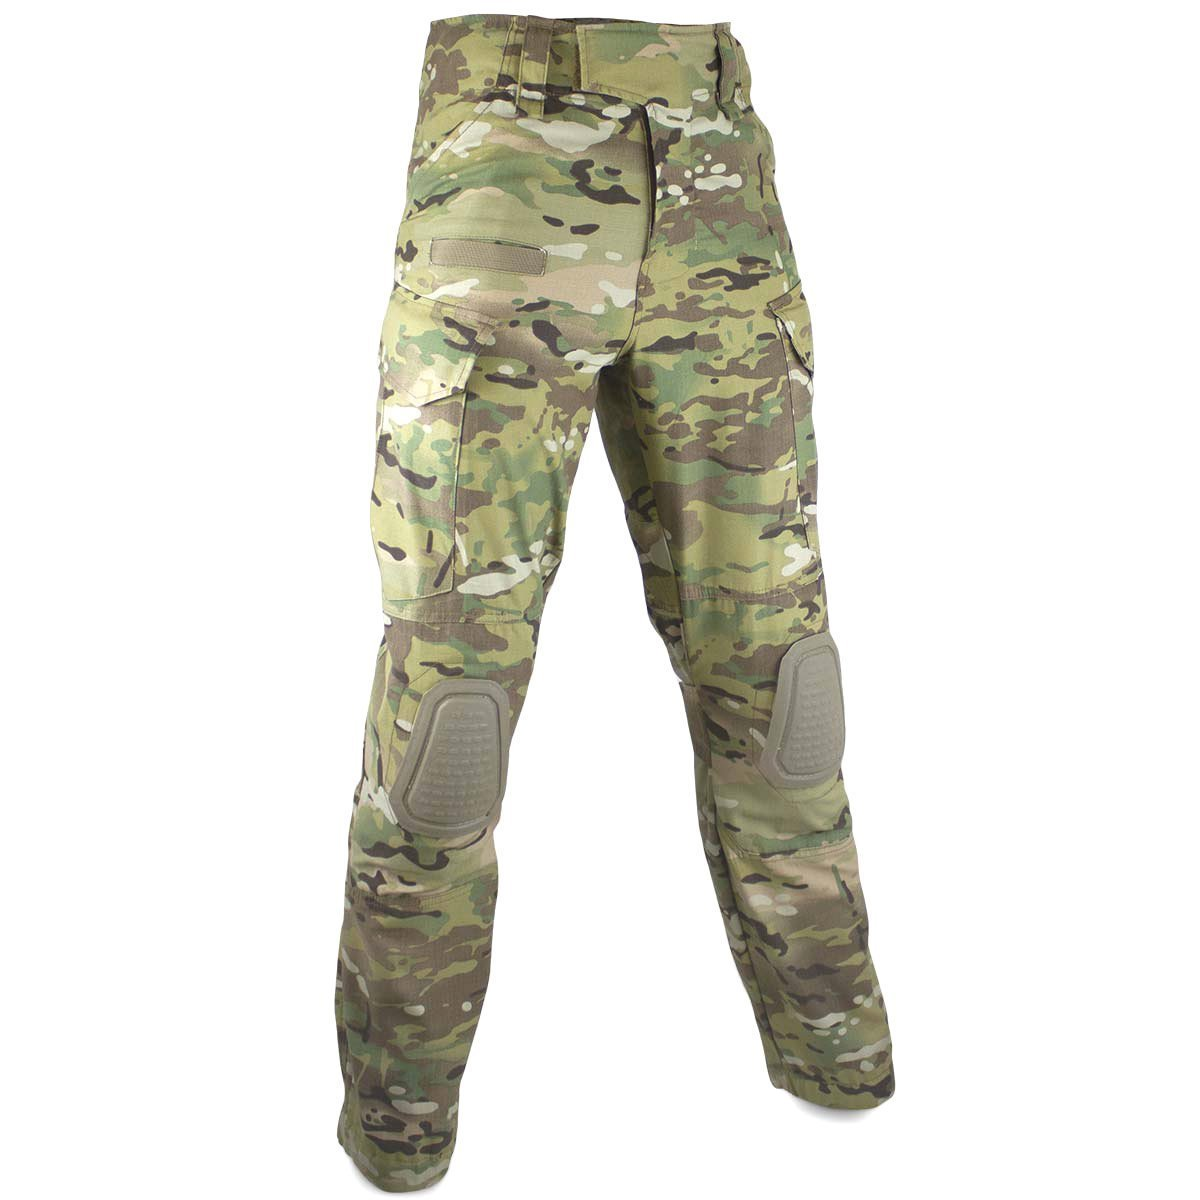 Bulldog Rogue MK3 Trousers MTC | Bulldog Tactical Gear